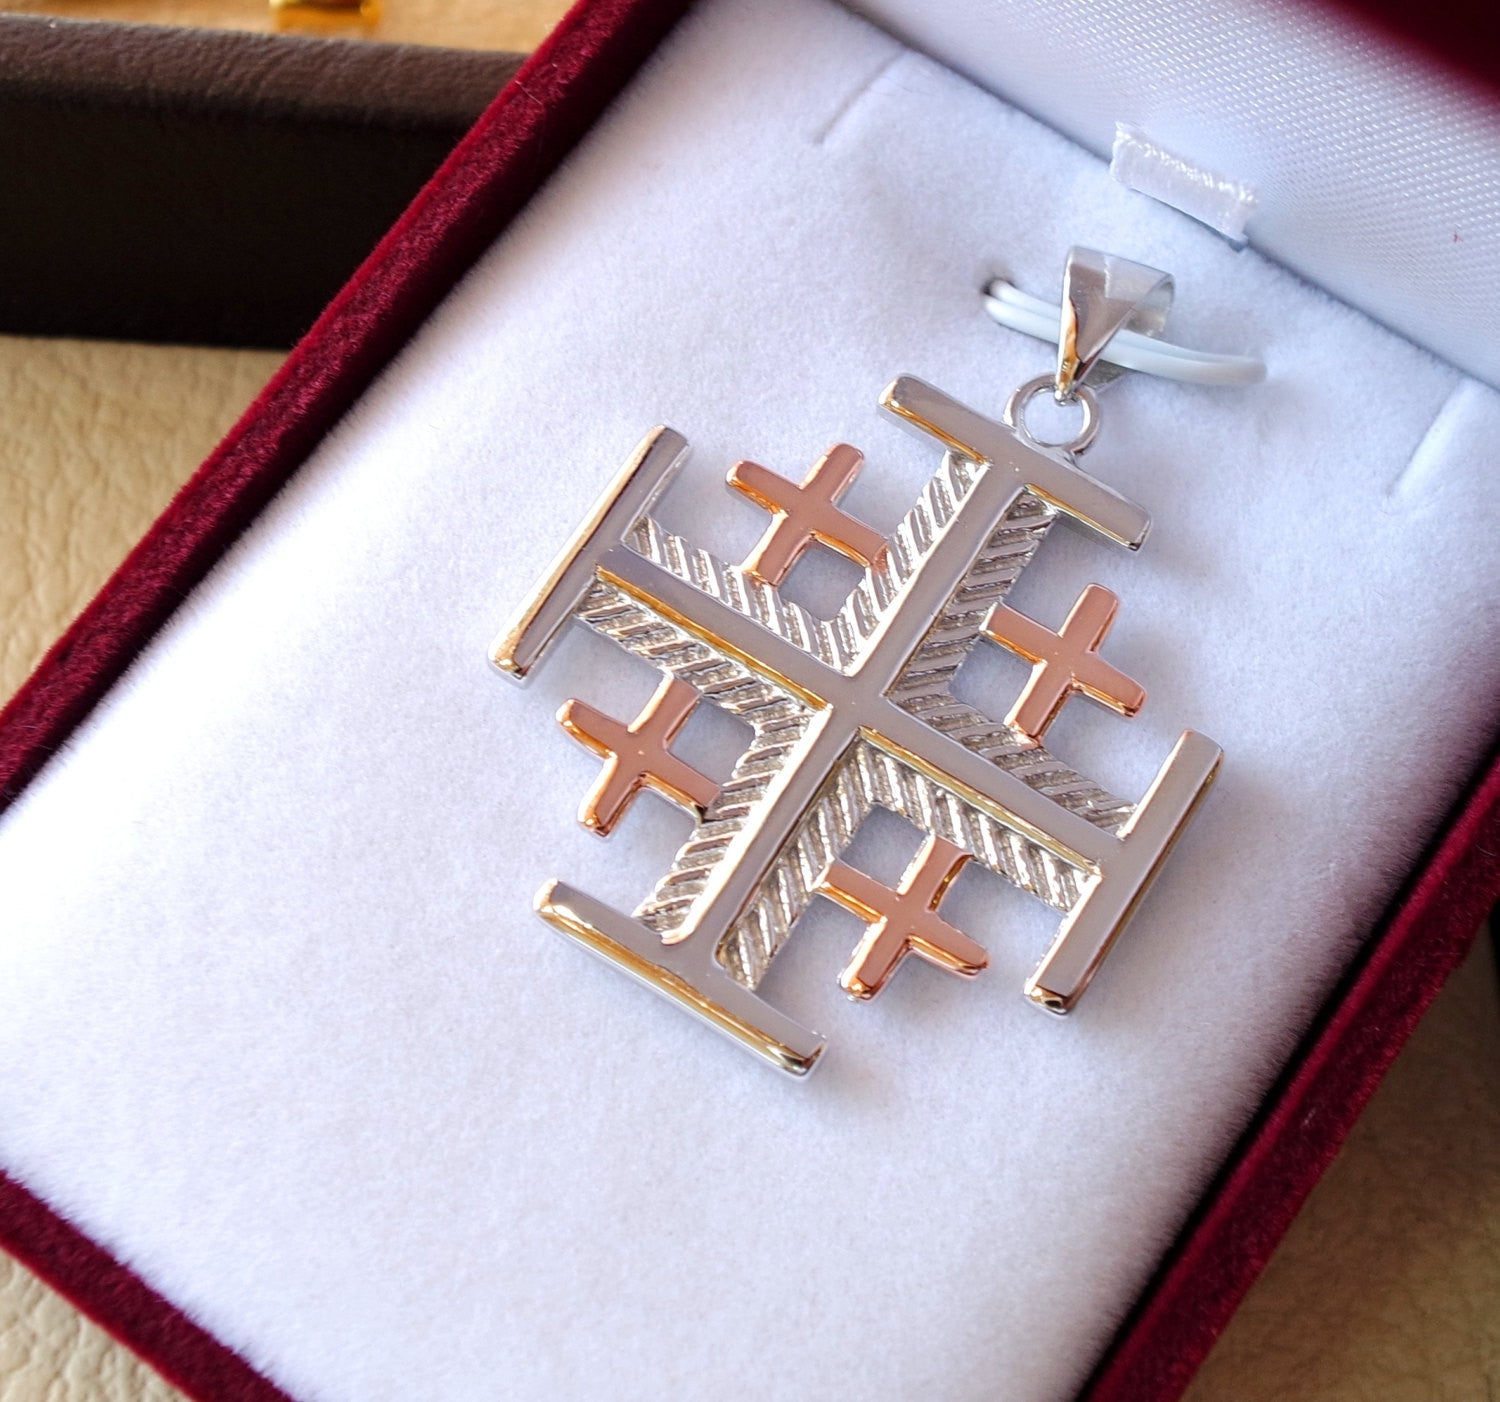 Jerusalem cross pendant two tone sterling silver 925 middle eastern jewelry christianity vintage handmade heavy fast shipping